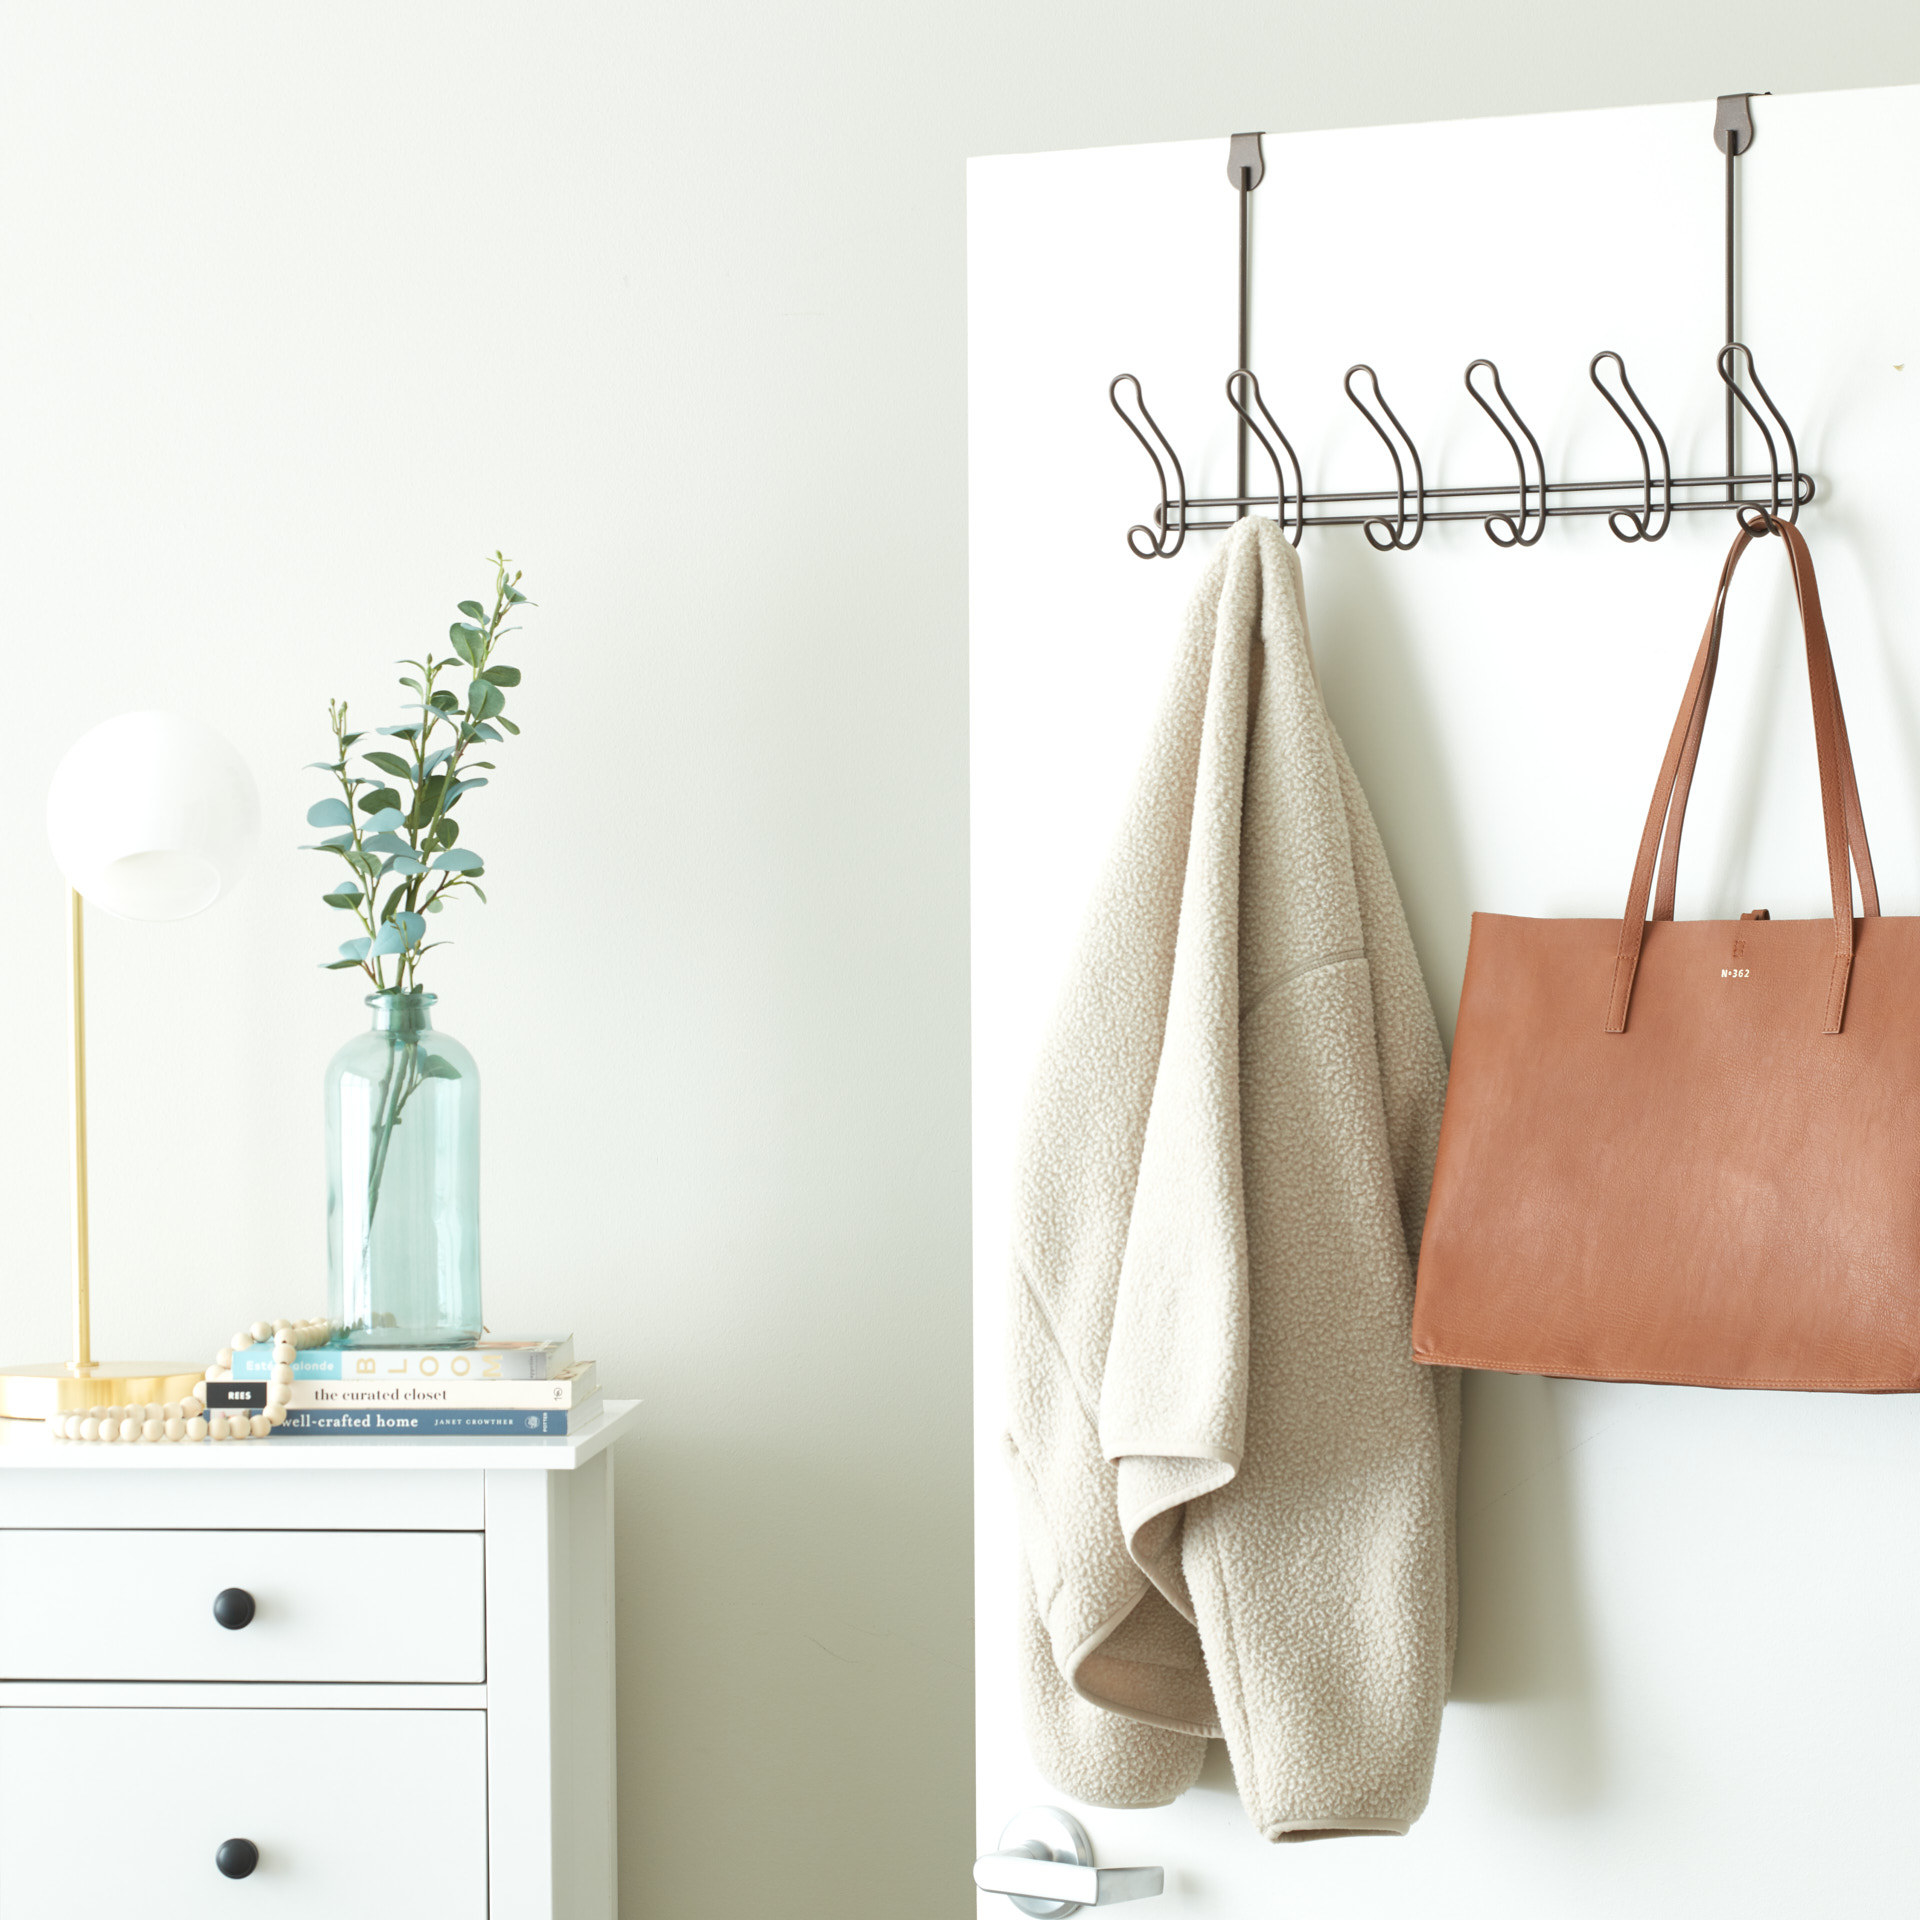 A metal over the door coat rack with six hooks